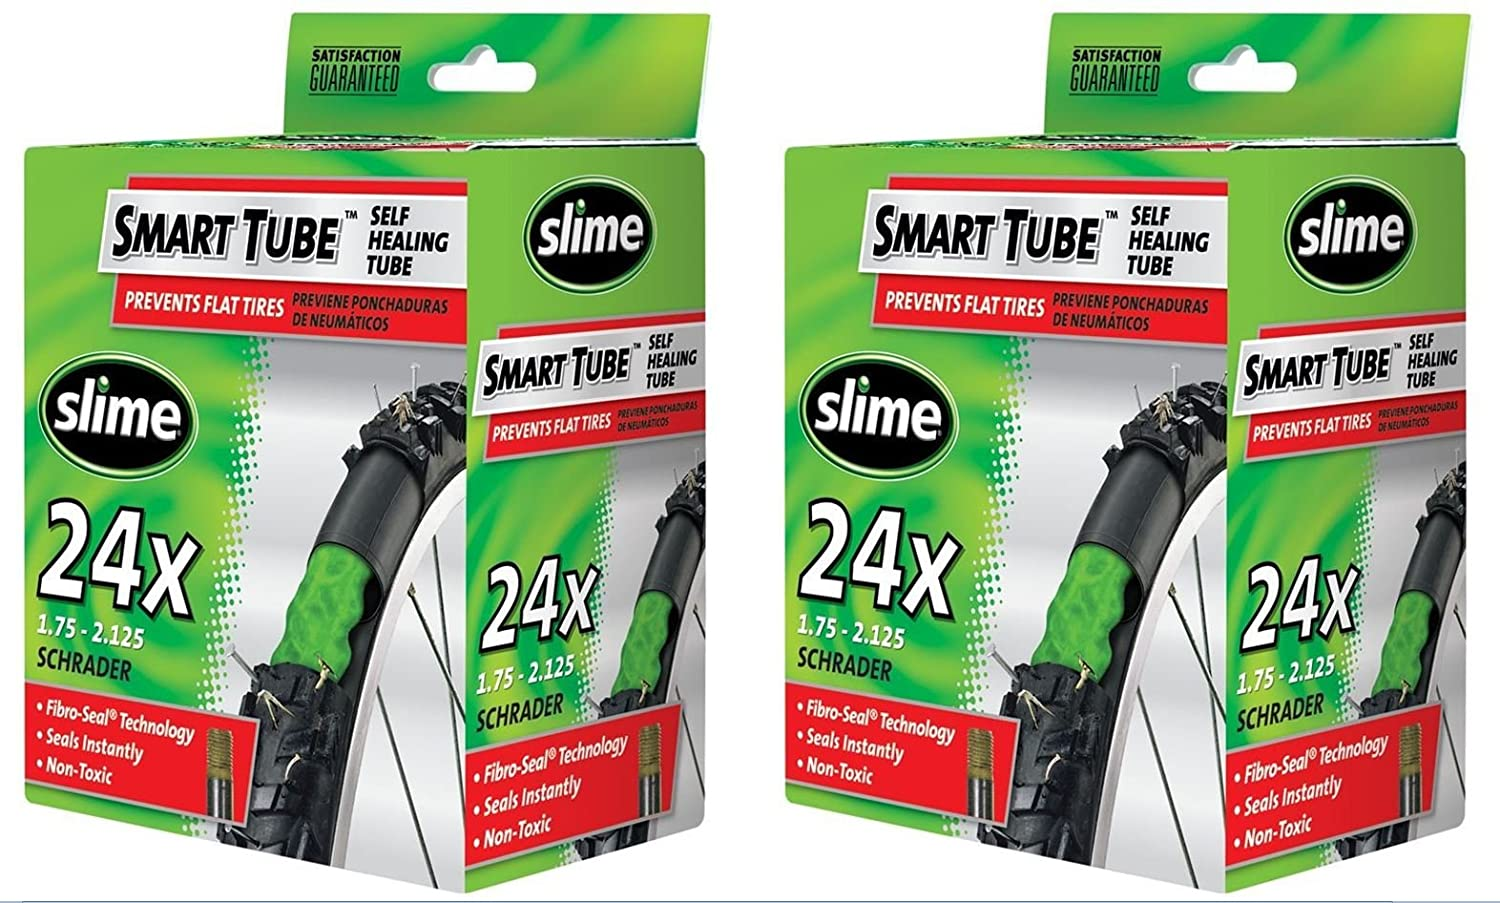 Slime Smart Tube Schrader Valve Bicycle Tube (24 X 1.75 to 2.125), 2 Pack шапка grenade max slime